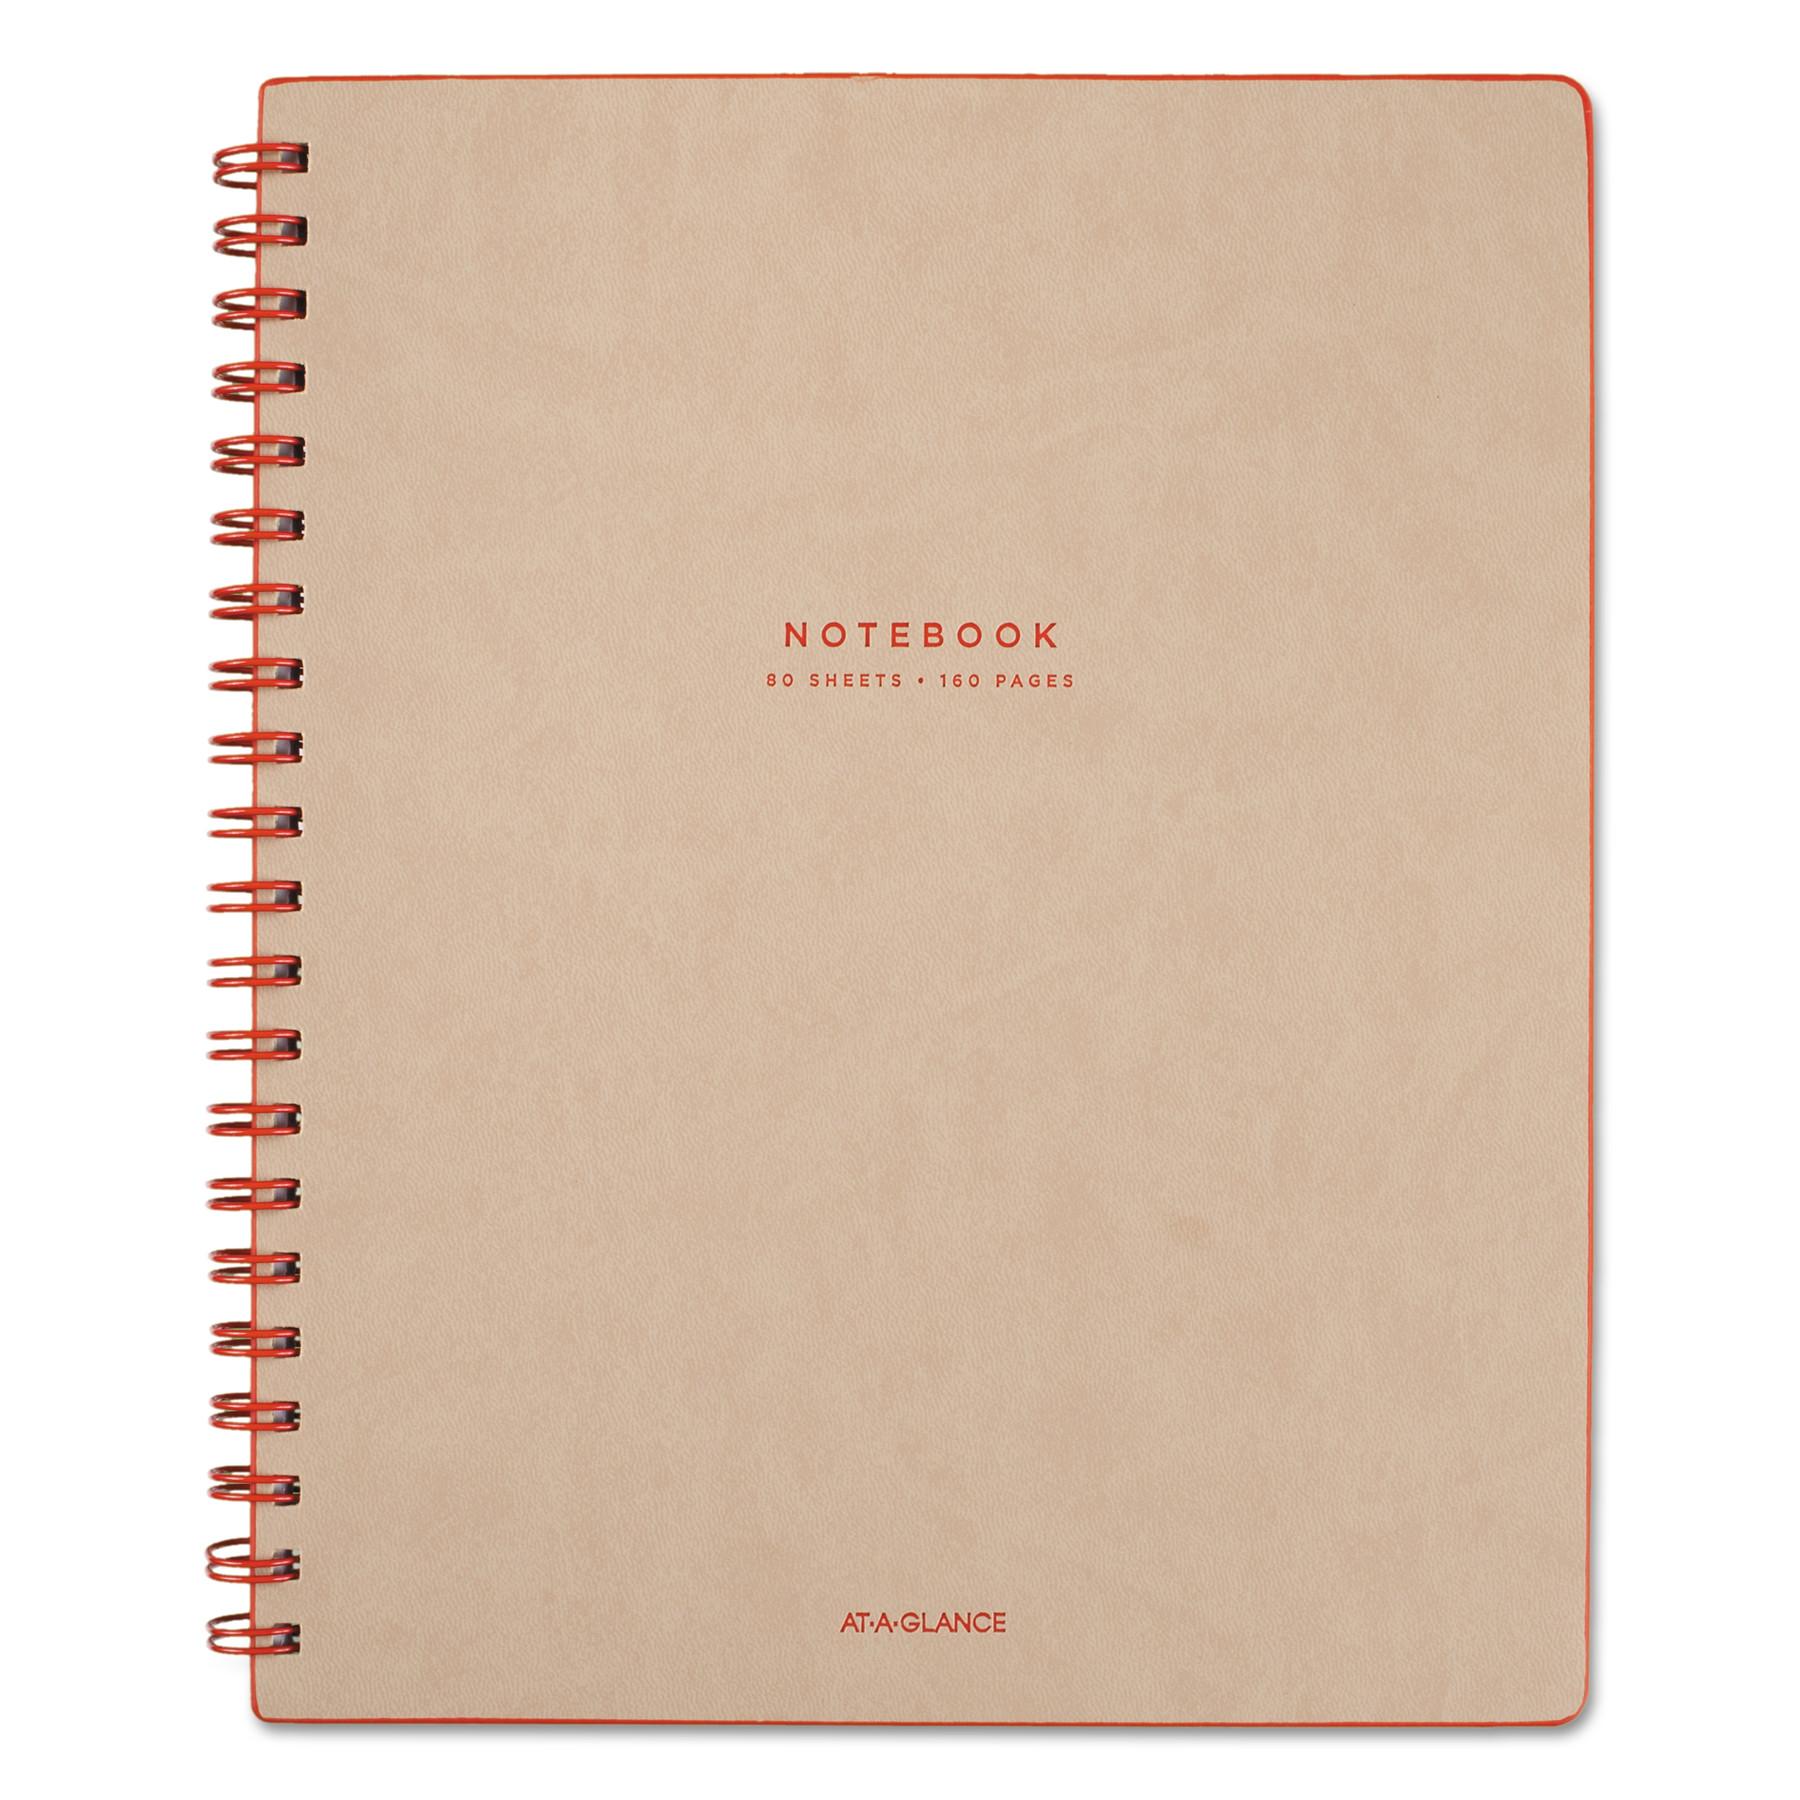 AT-A-GLANCE Collection Twinwire Notebook, Legal, 11 x 8 3/4, Tan/Red, 80 Sheets